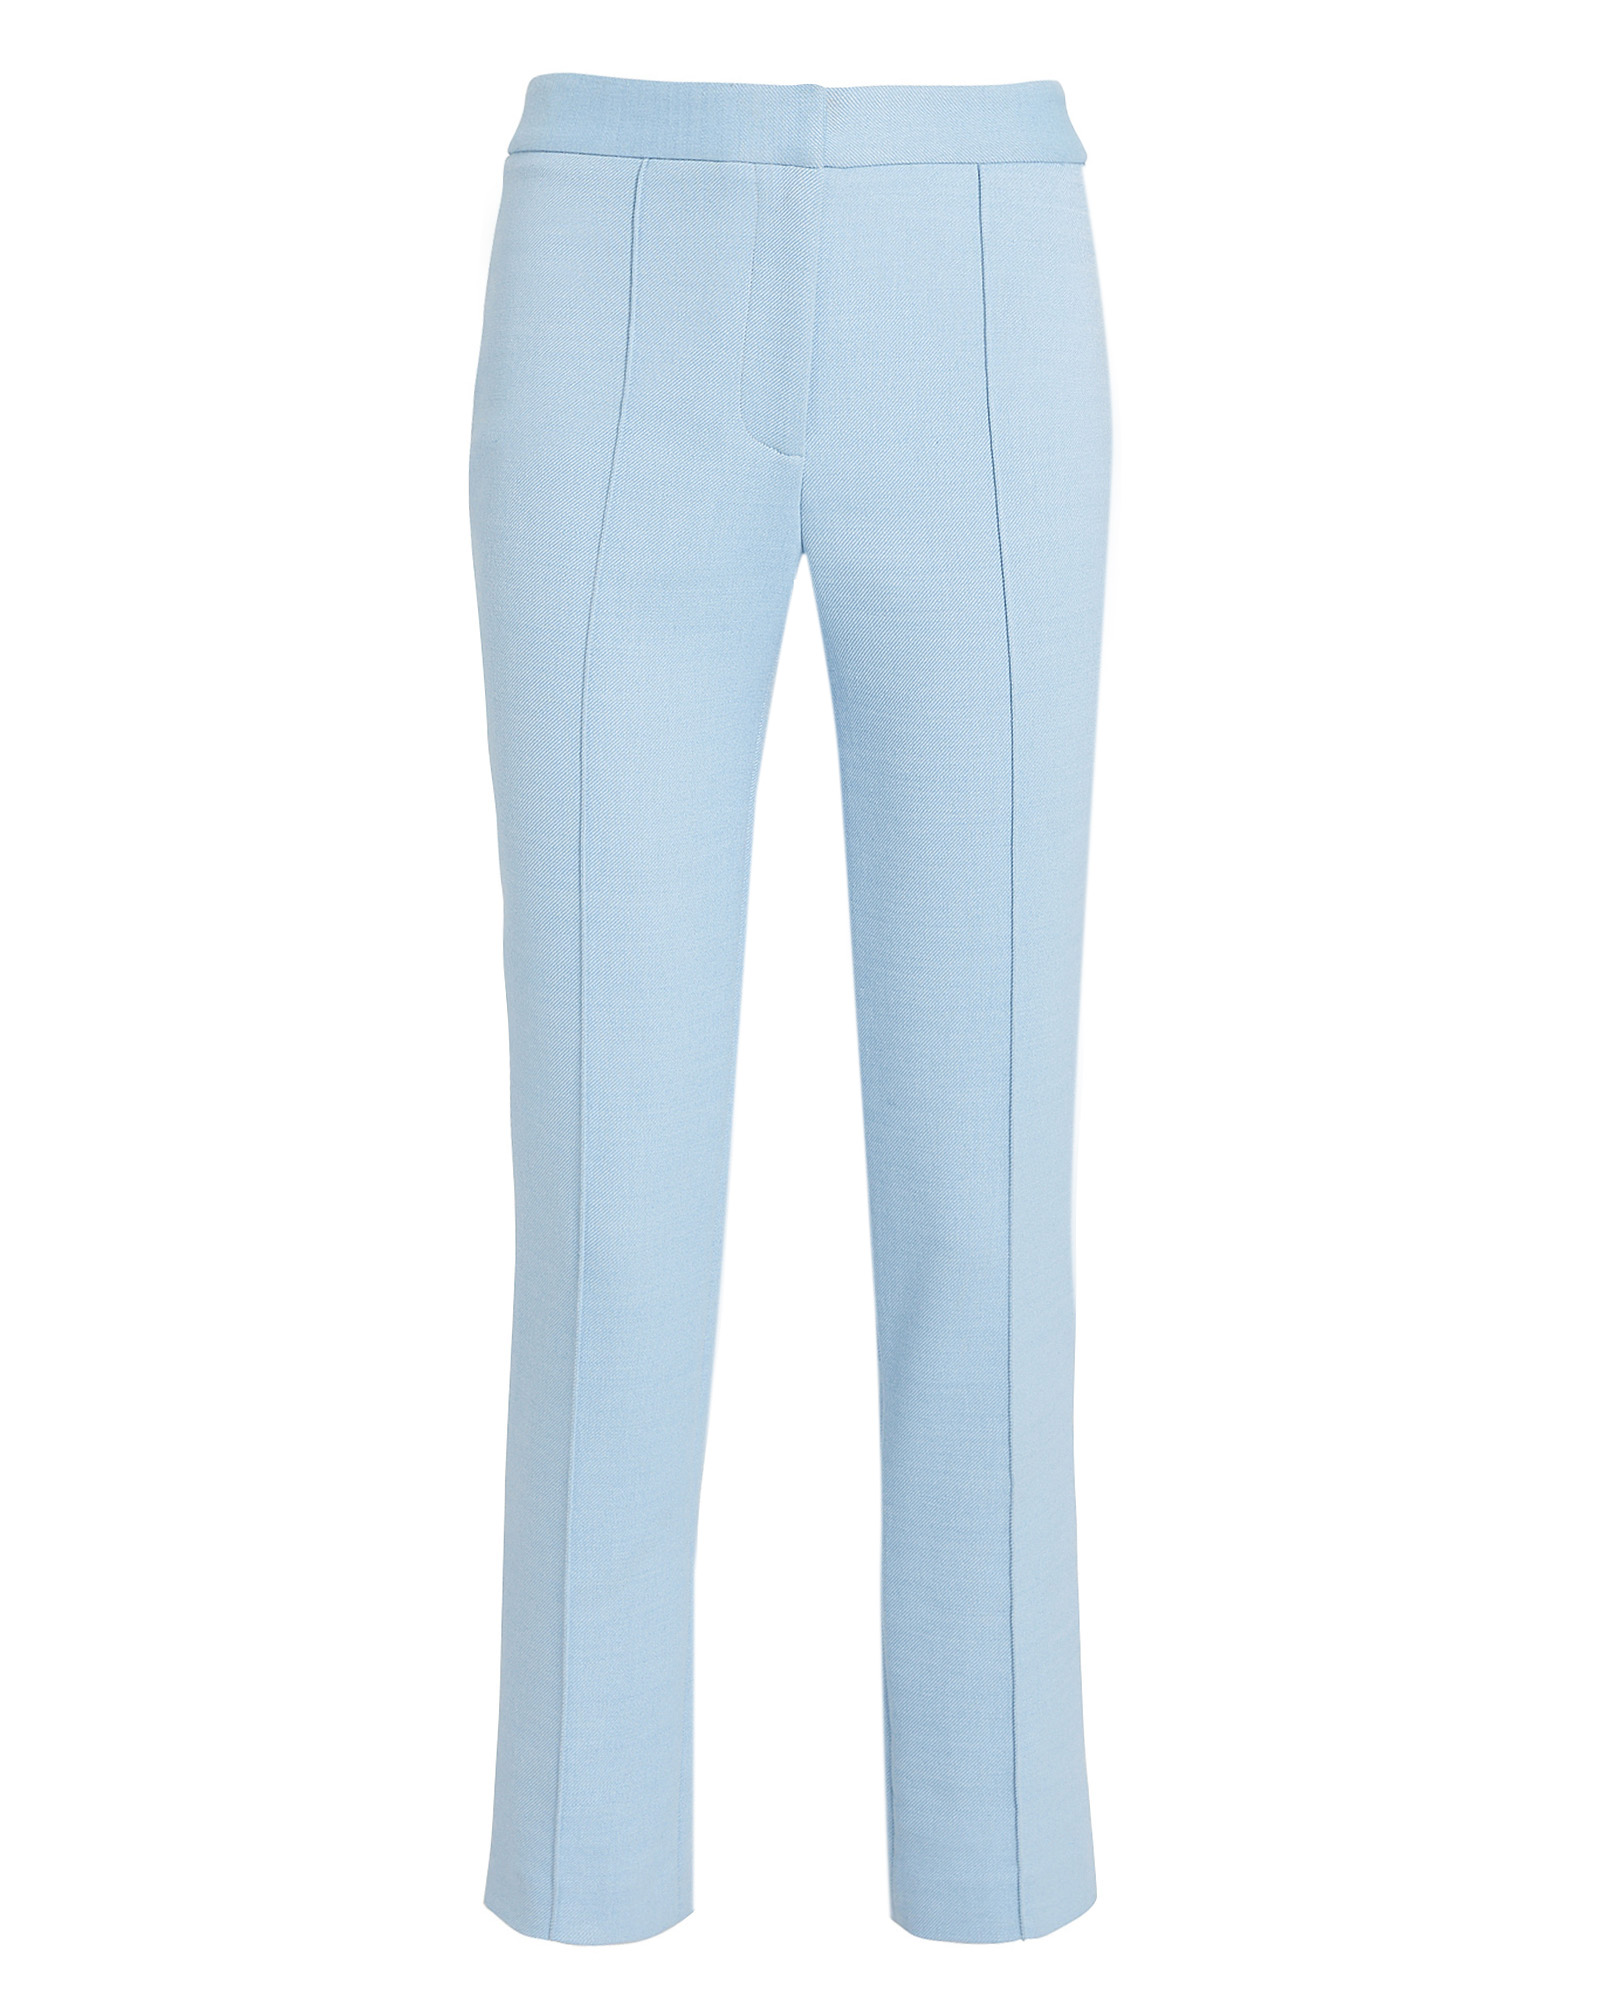 Adam Lippes Pants ADAM LIPPES CIGARETTE PINTUCK PANTS  POWDER BLUE 4